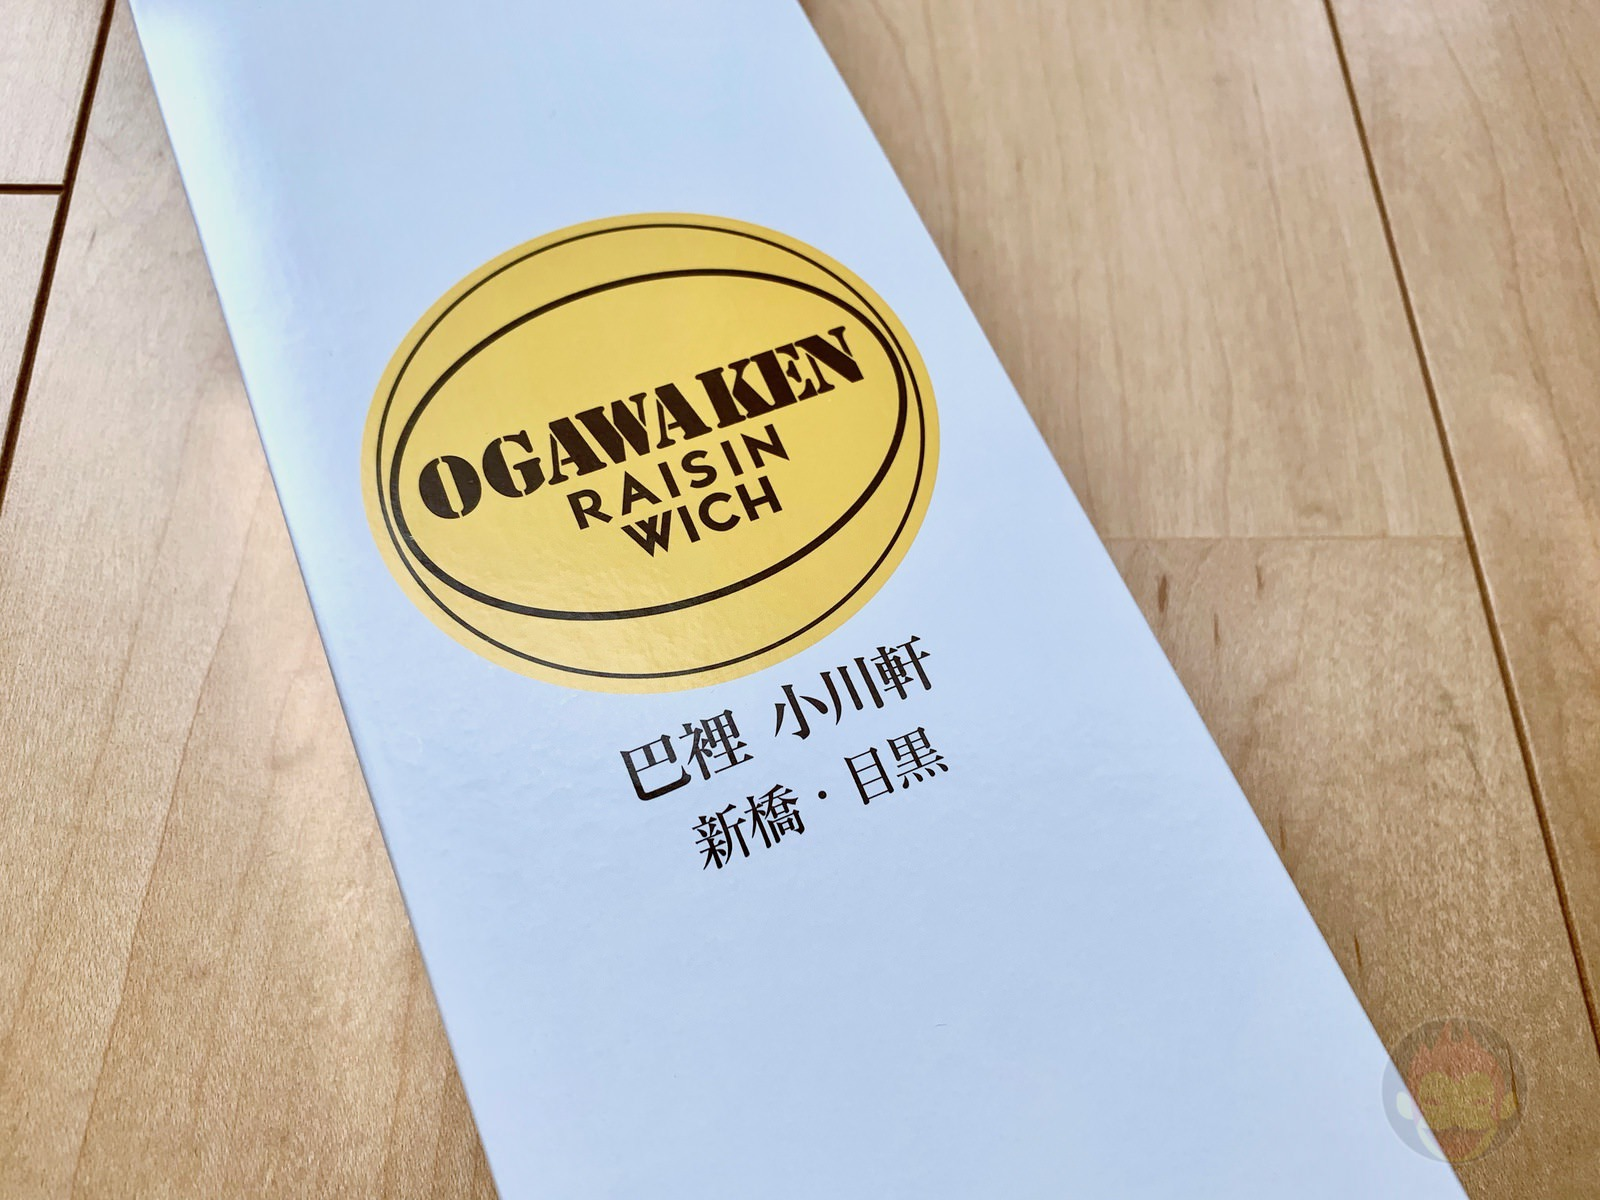 Ogawaken Raisin Wich Original 01